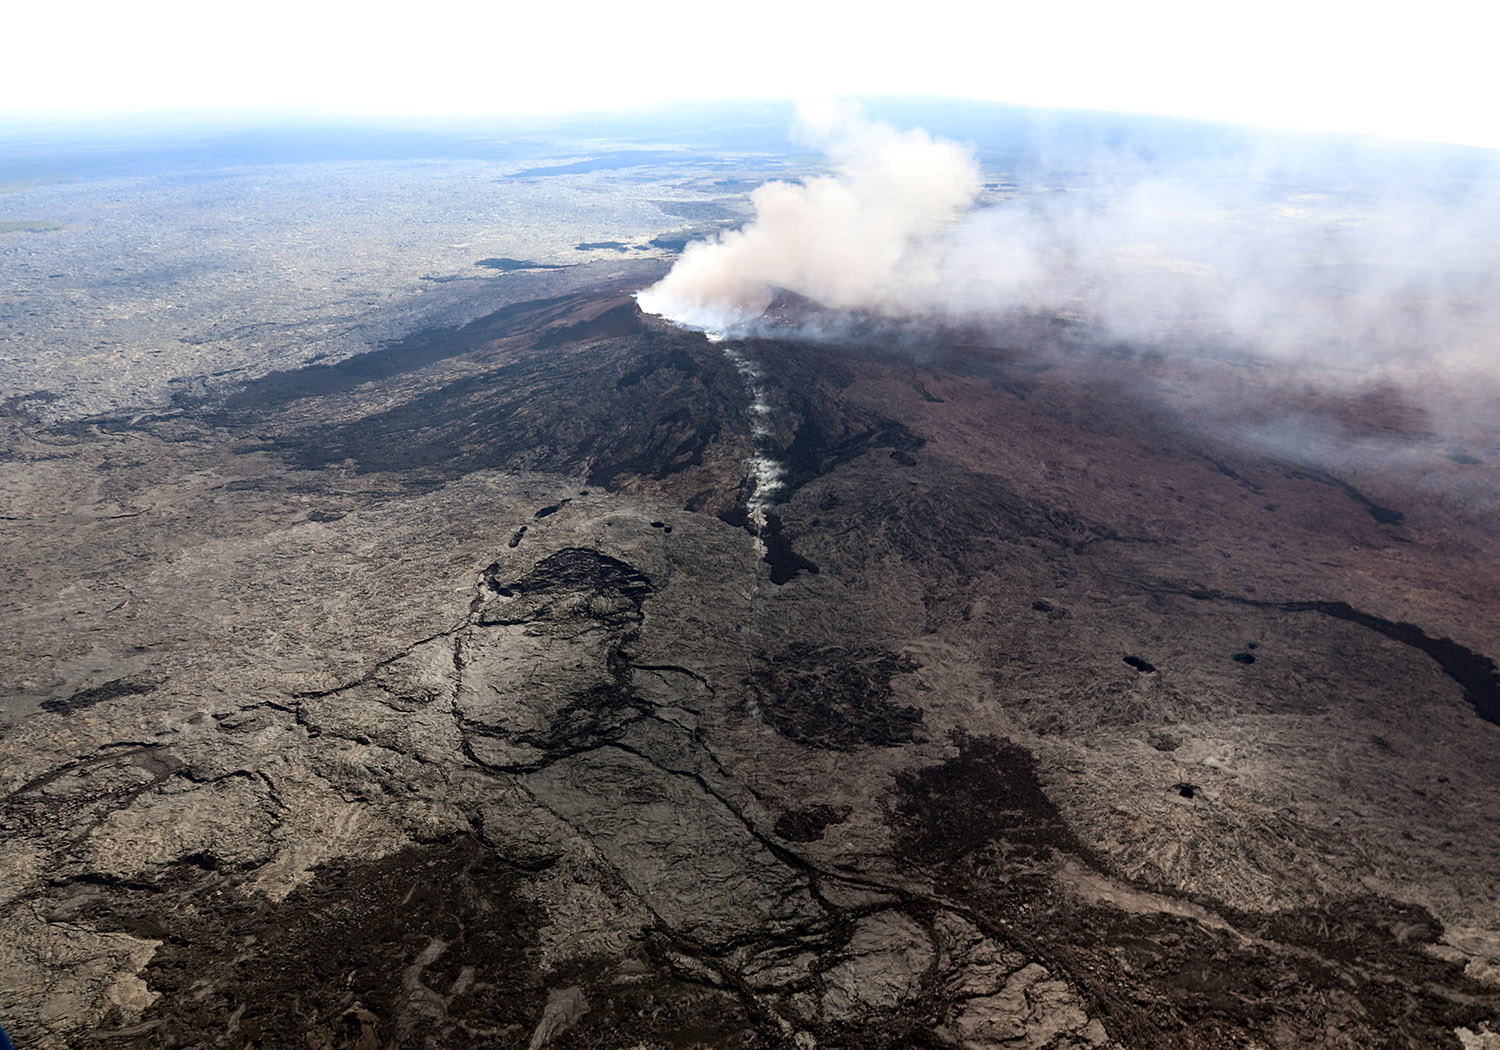 The Kilauea Volcano fissure that formed on the west flank of the Pu'u 'O'o cone (line of white steam) is seen in this aerial image after the volcano erupted following a series of earthquakes over the last couple of days, in Hawaii, U.S. on May 3, 2018. Picture taken on May 3, 2018. USGS/Handout via REUTERS